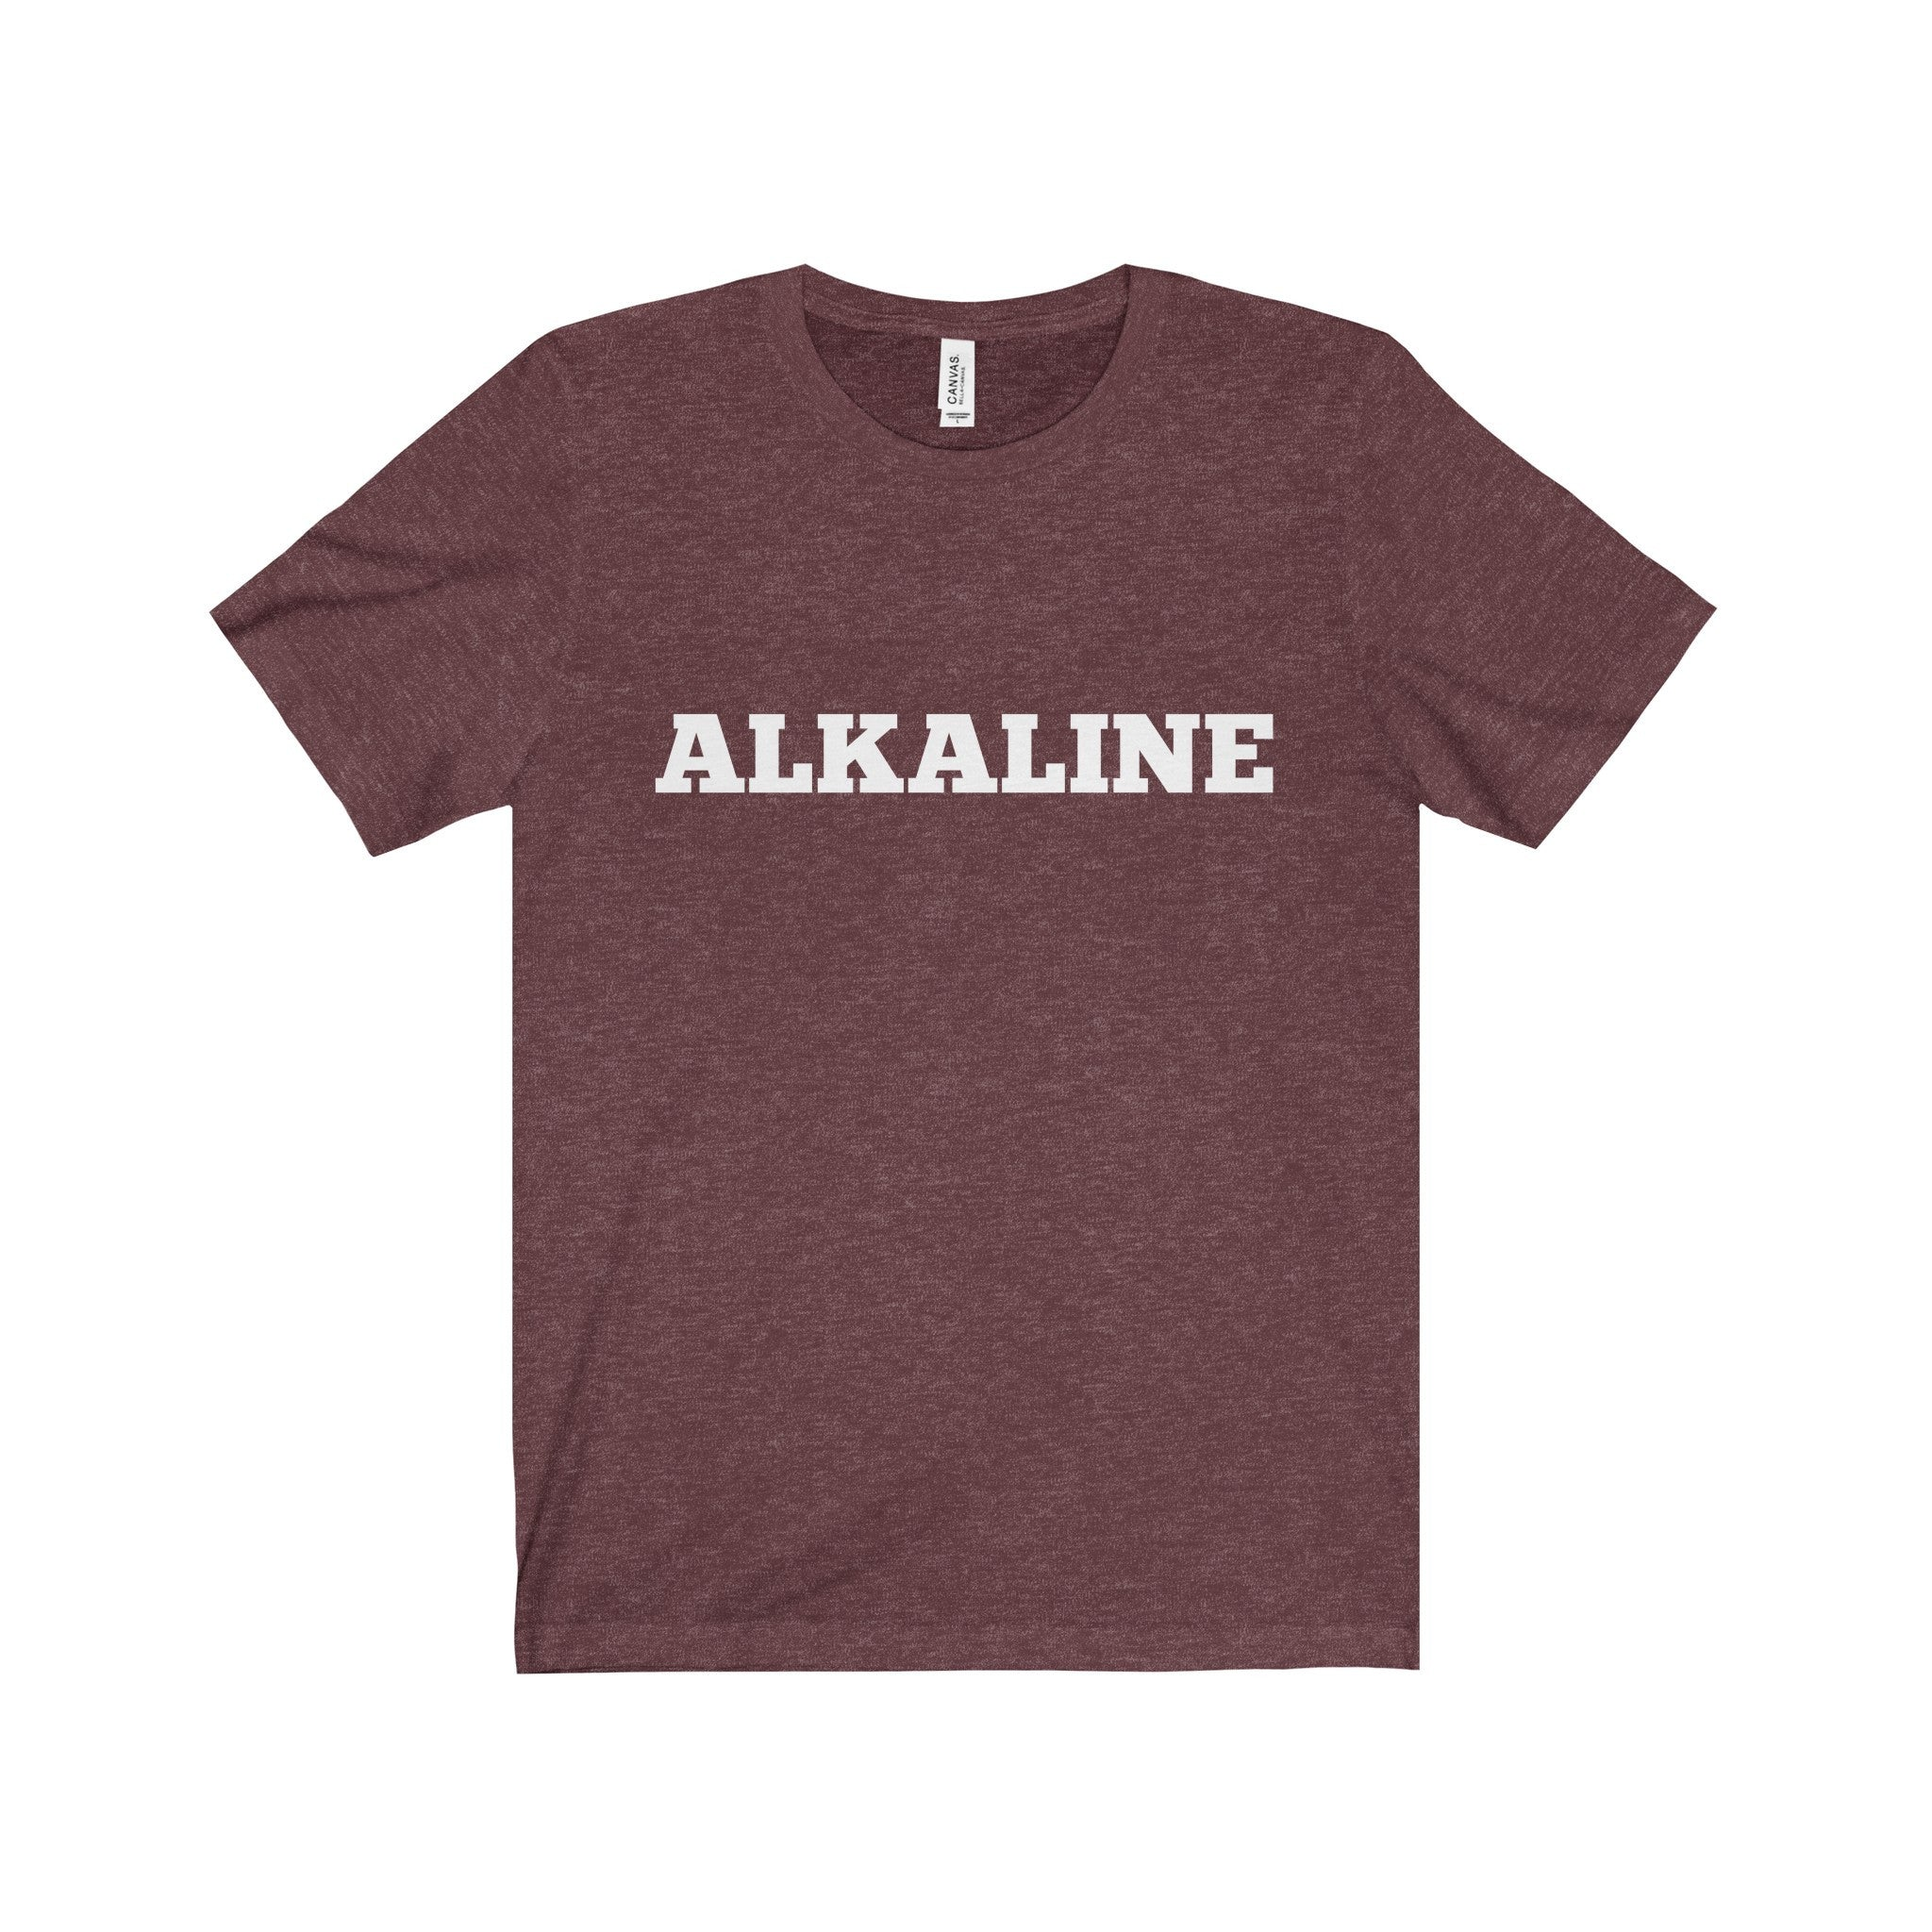 ALKALINE White Letter Tee (5 colors available)